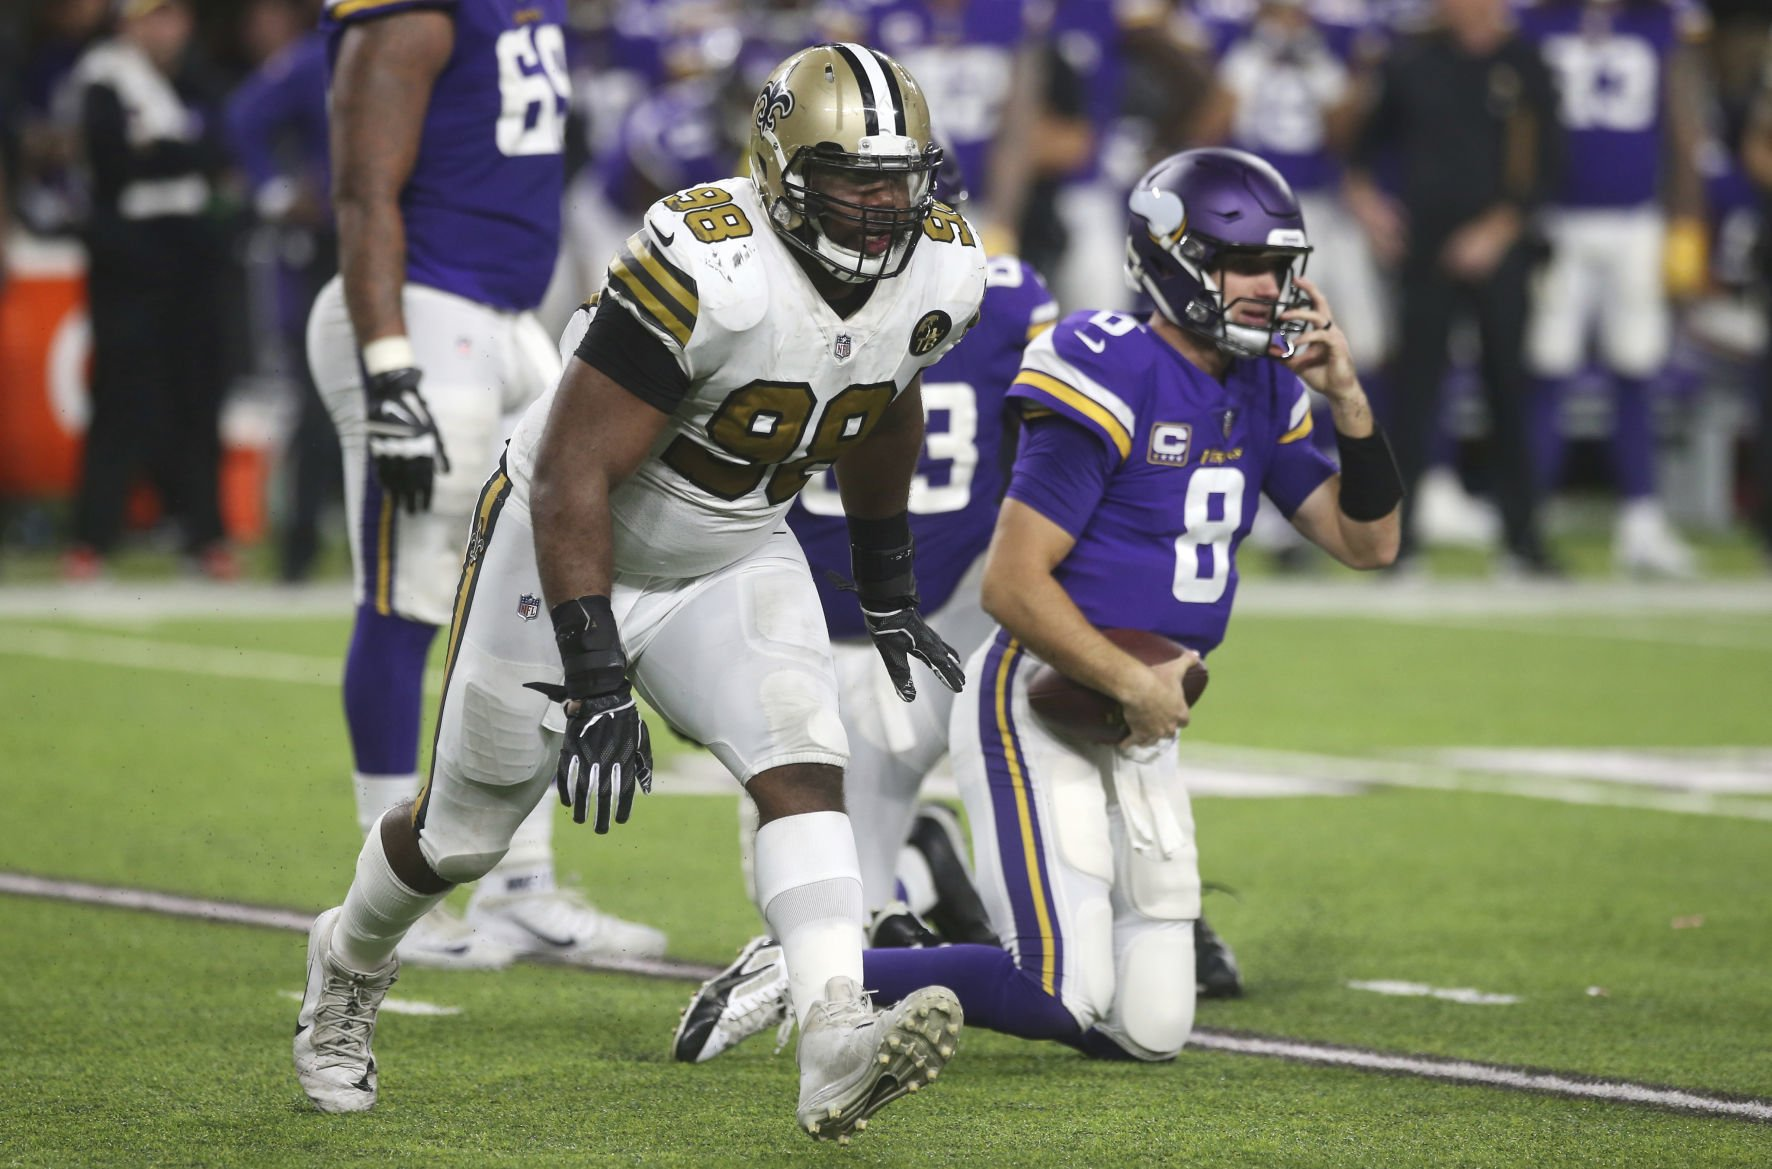 As Sheldon Rankins recovers from major injury, Saints to pick up ...